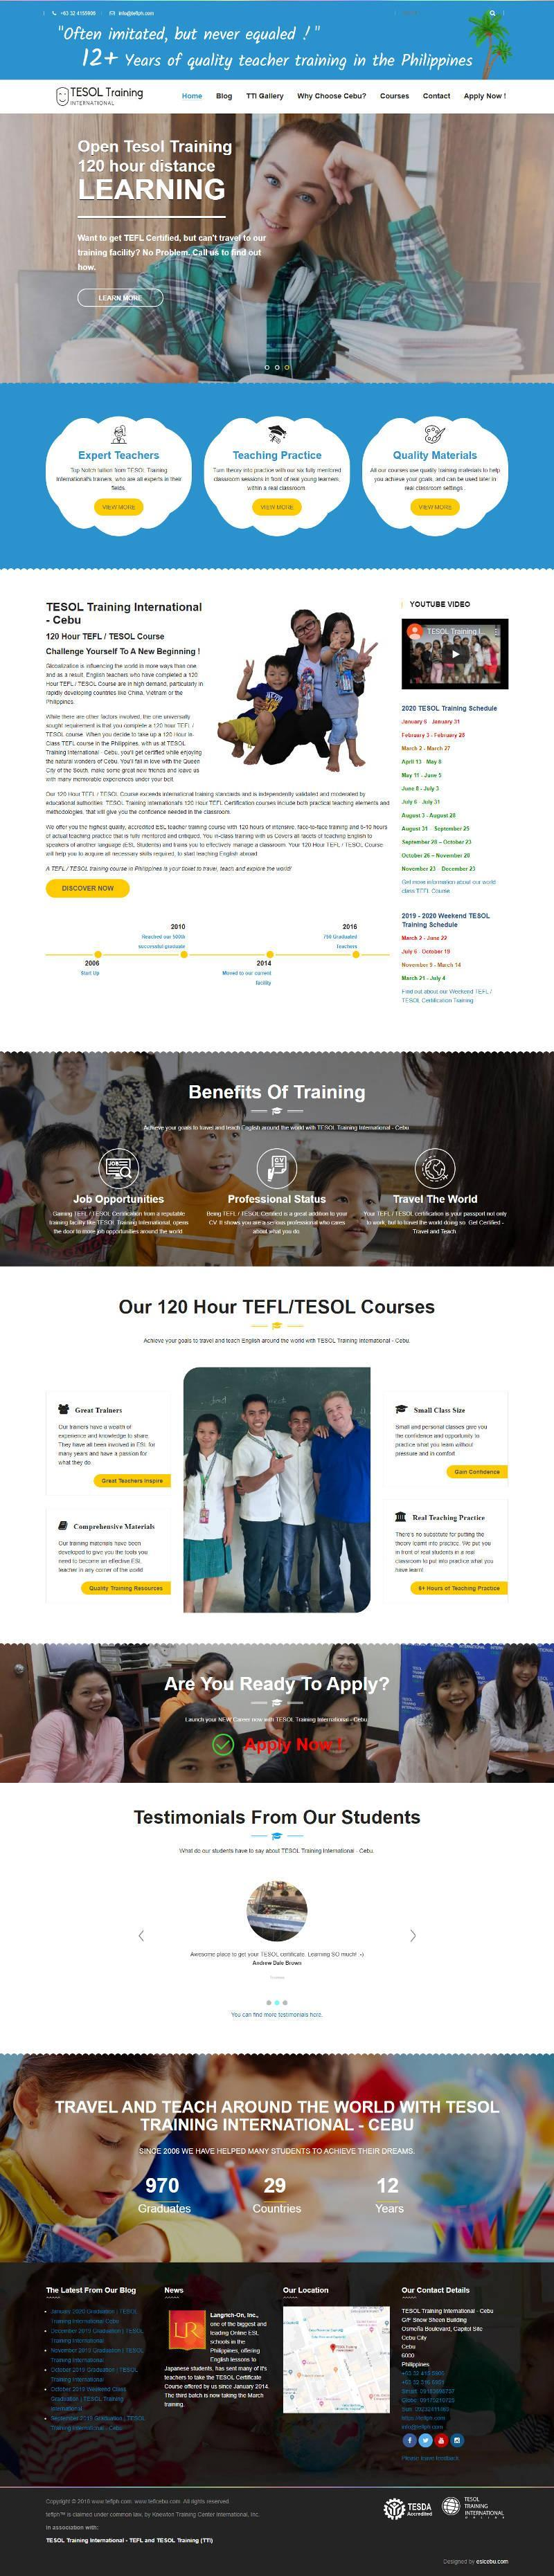 TESOL Training International